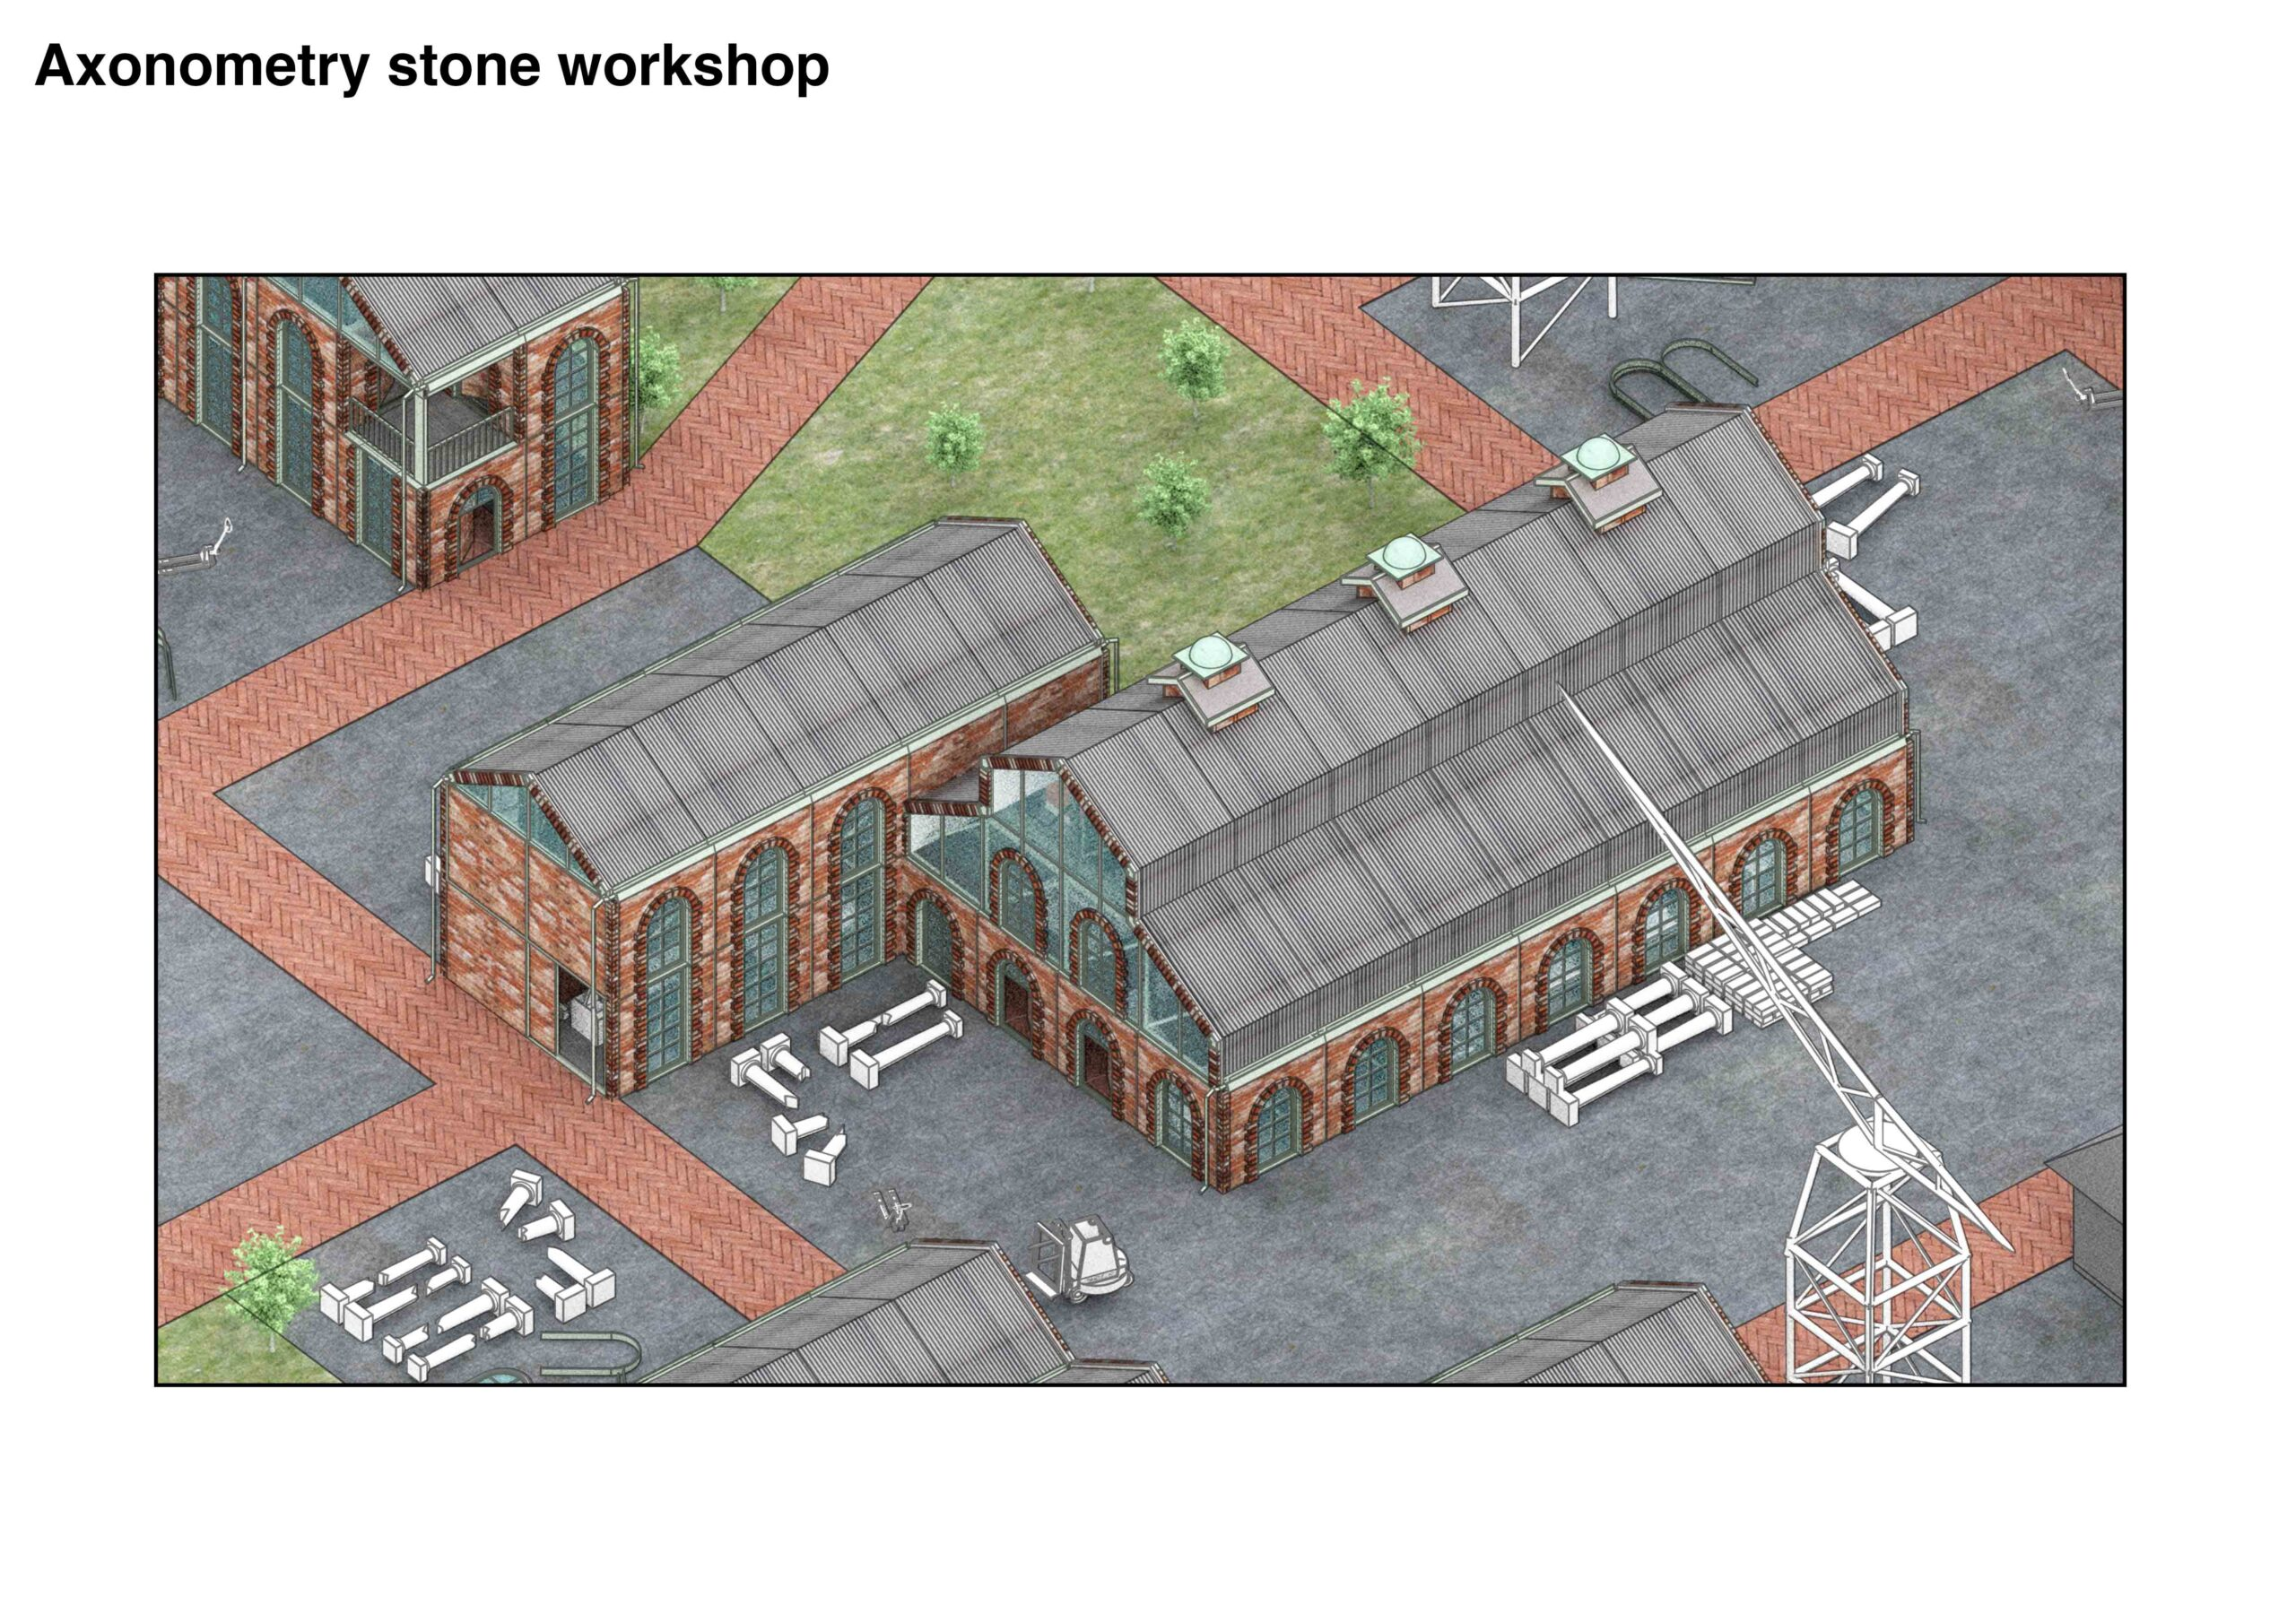 Portfolio Page of an axonometric of the stone workshop.